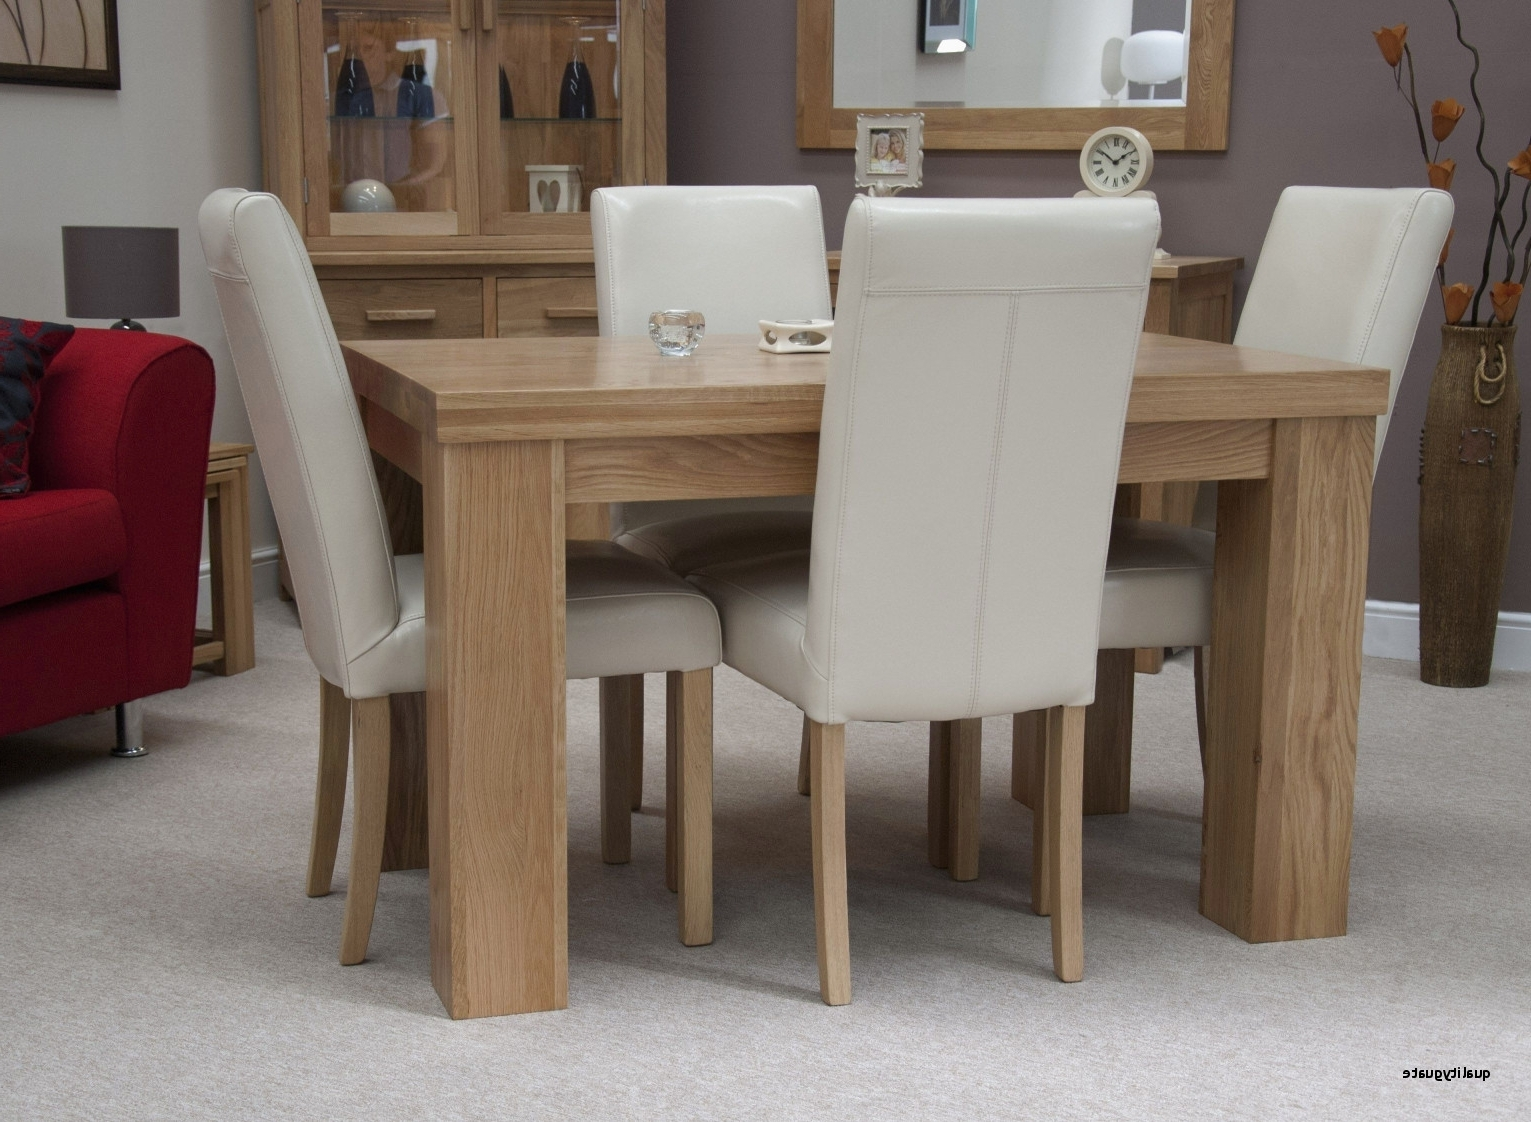 Chunky Solid Oak Dining Tables And 6 Chairs Regarding Preferred Top 20 Unique Chunky Solid Oak Dining Table And 6 Chairs – Fernando Rees (View 13 of 25)